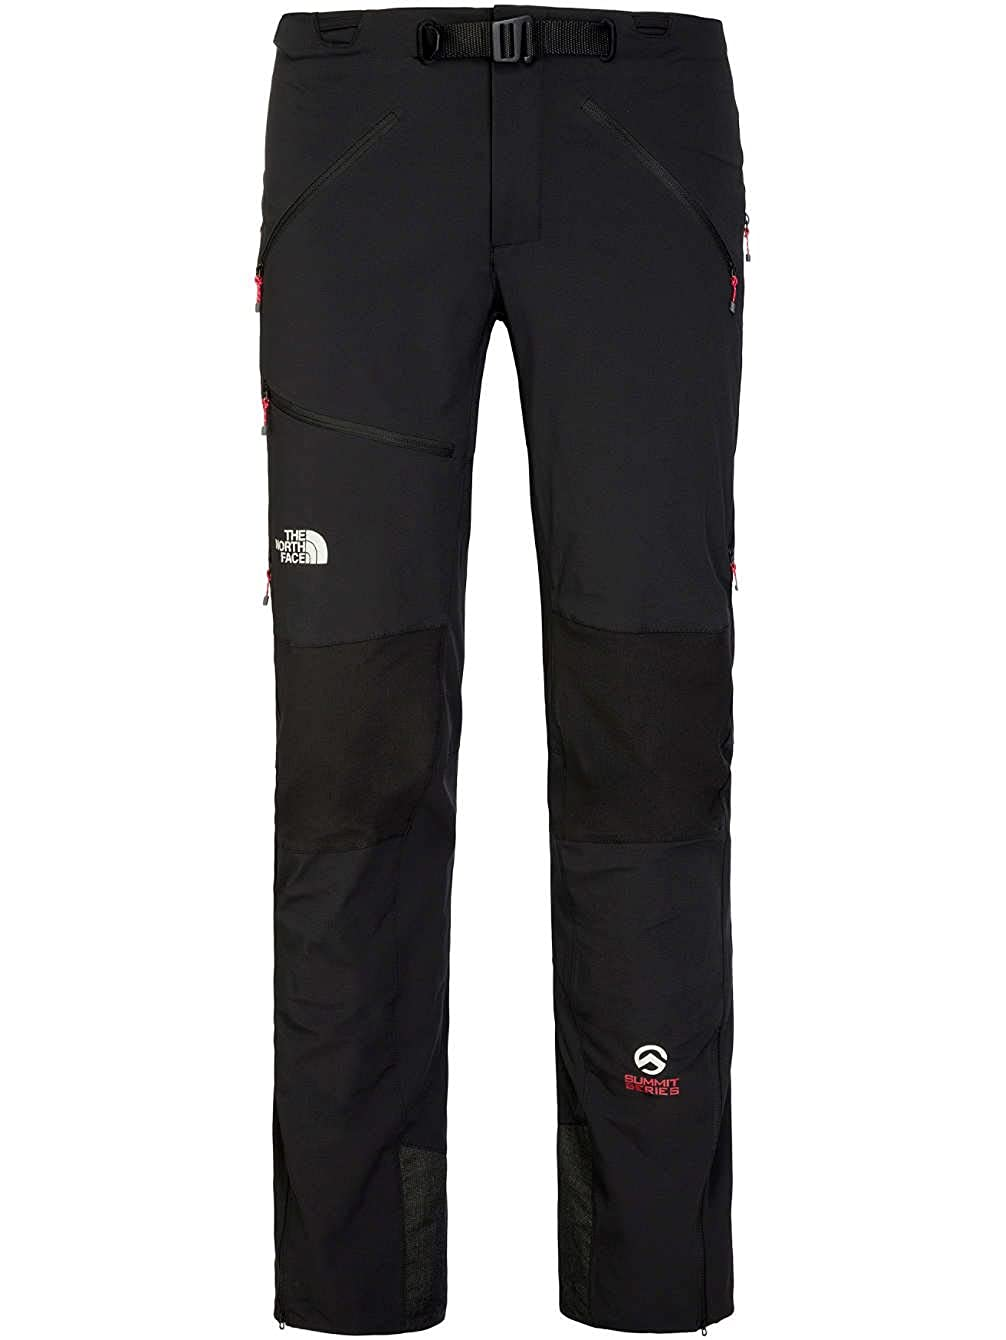 THE NORTH FACE Herren Outdoor Hose Descendit Outdoor Pants REG